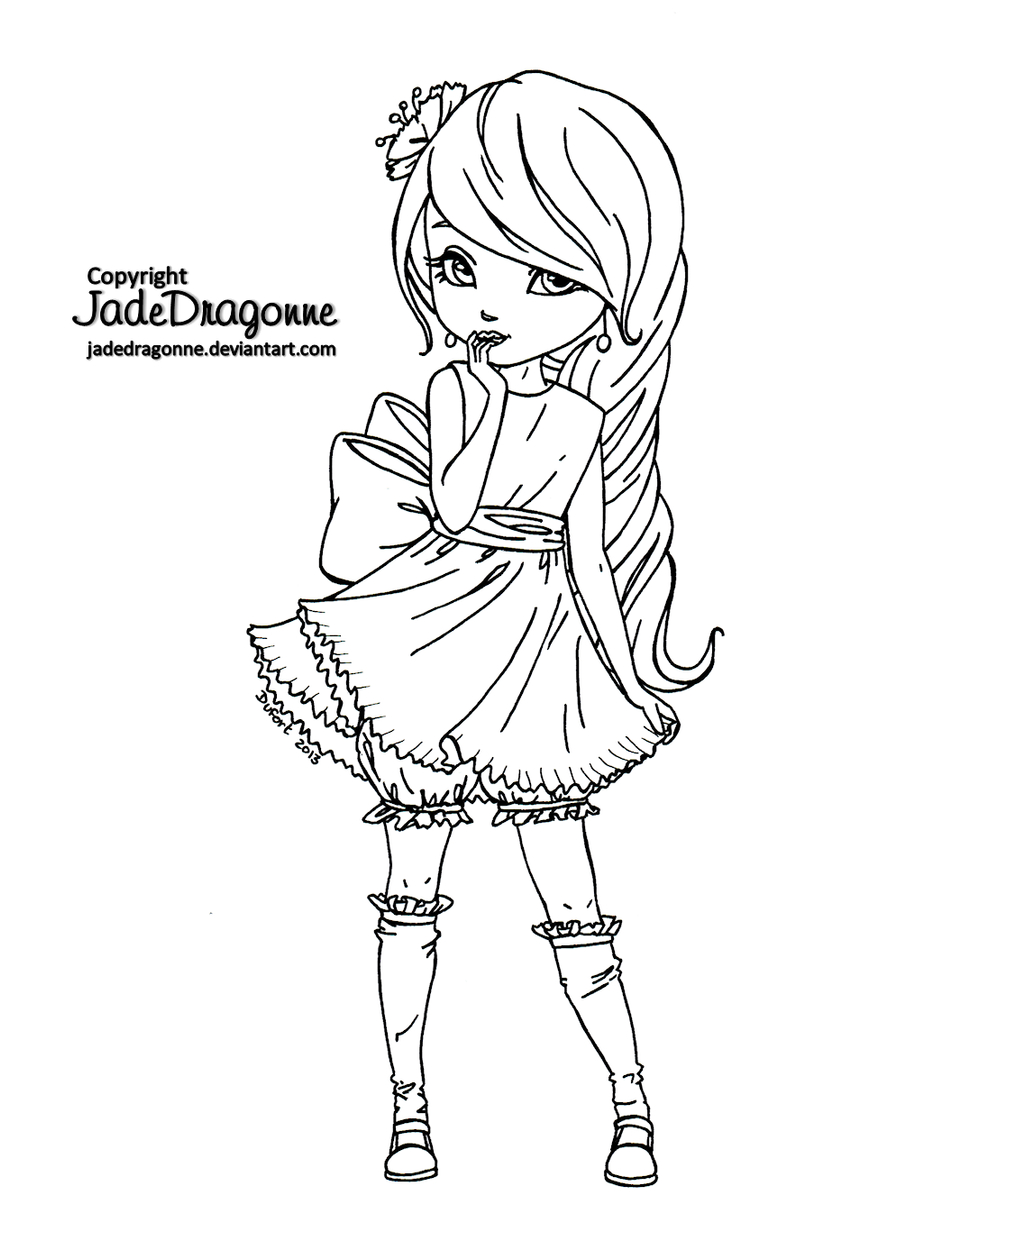 jadedragonne deviantart coloring pages - photo#40